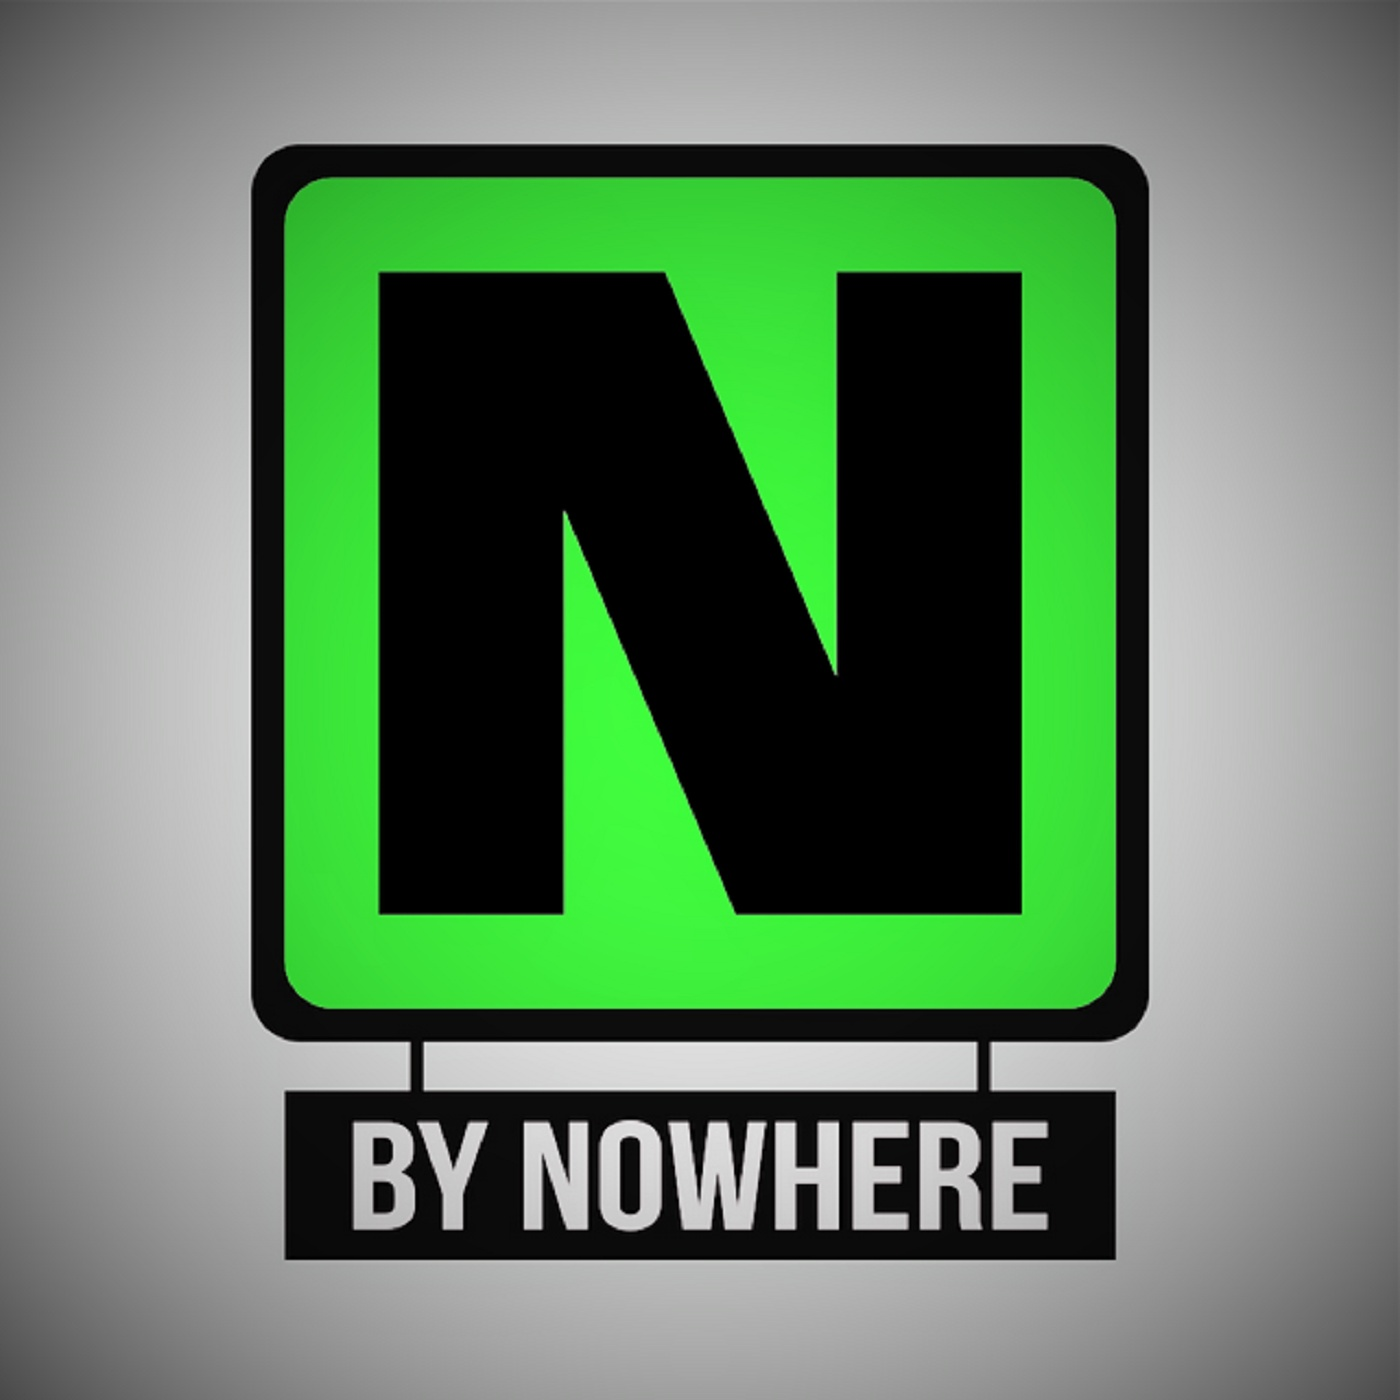 North by Nowhere